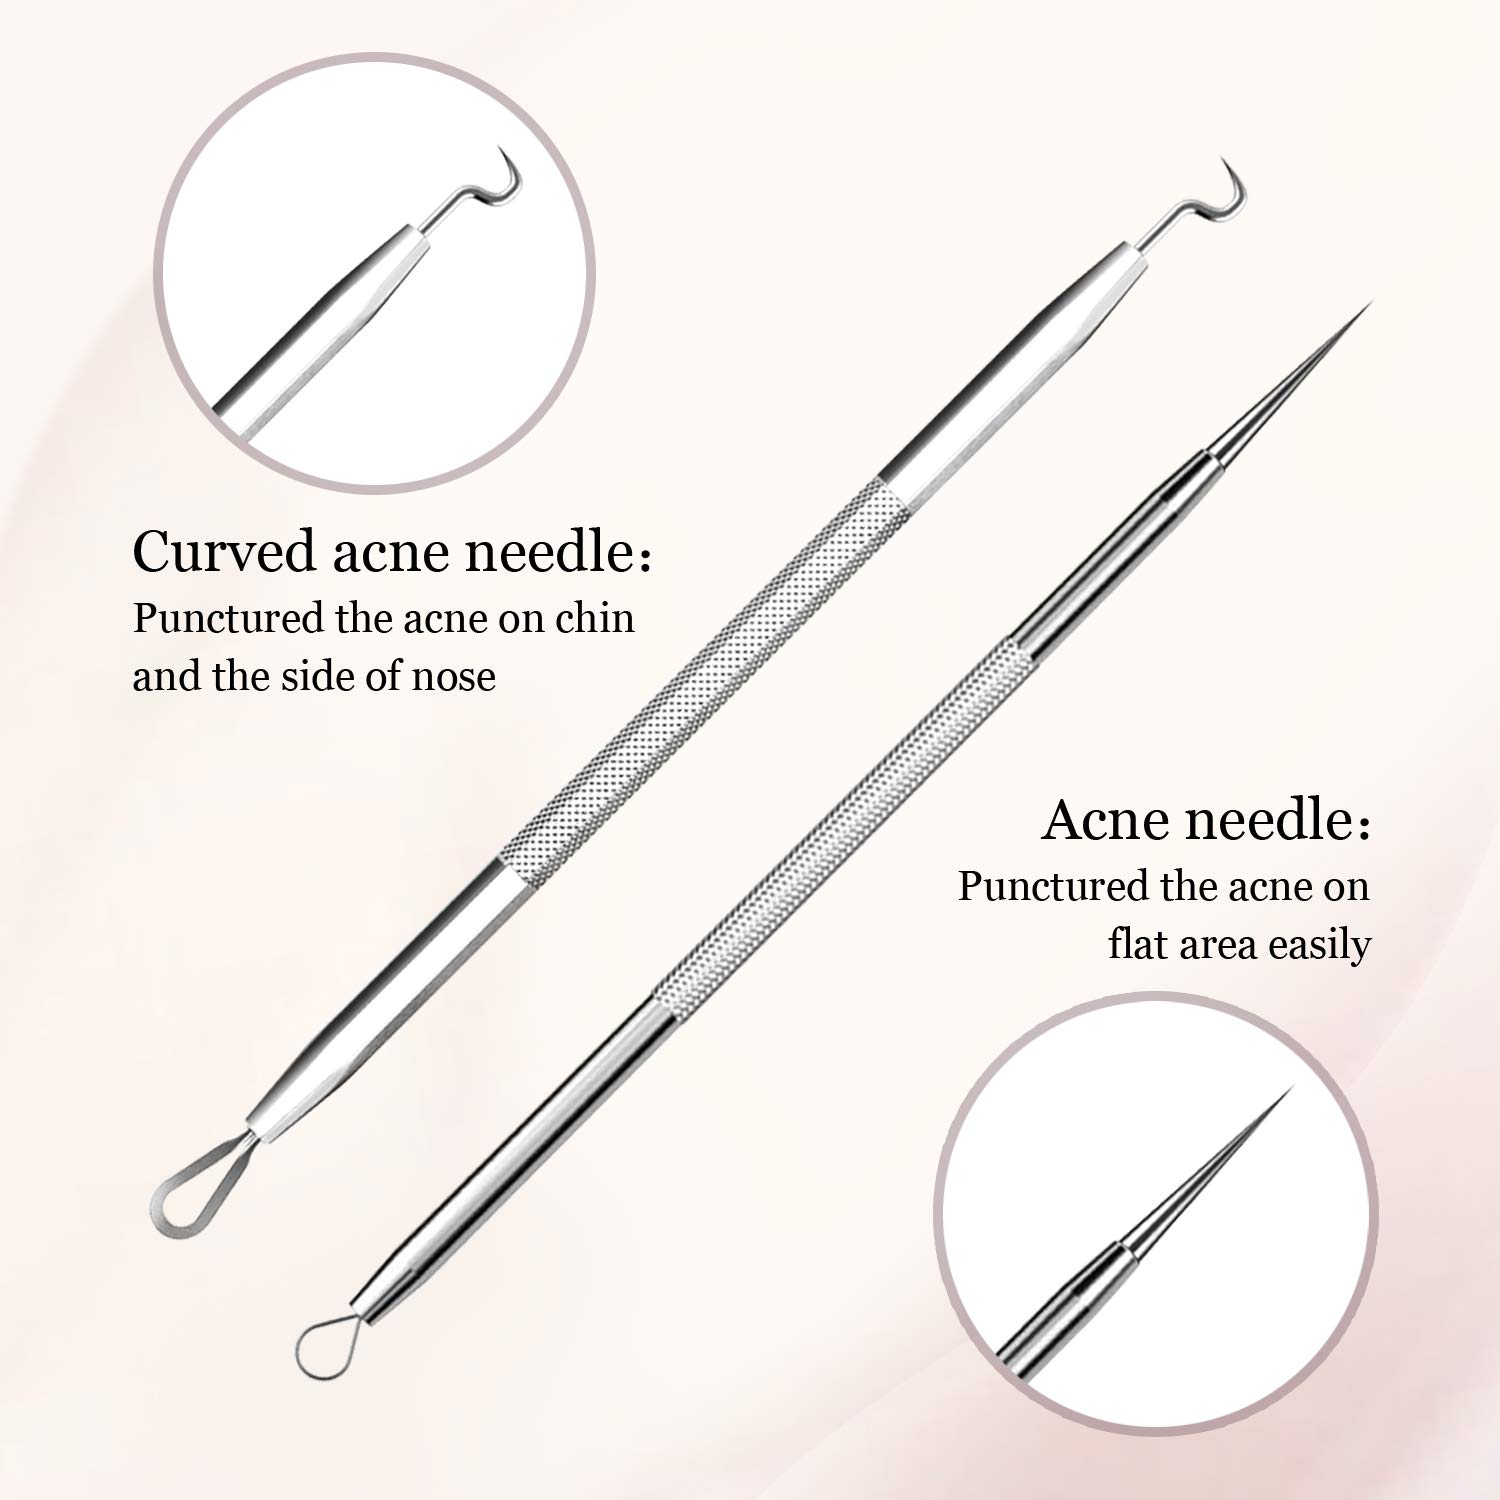 LUBEAU Blackhead Remover Tool Pimple Popper Acne Pimple Comedone Extractor Spot Remover Tool for Whitehead Blemish Zit, Facial Care Skin Protect with Leather Case and Mirror (6 pcs)